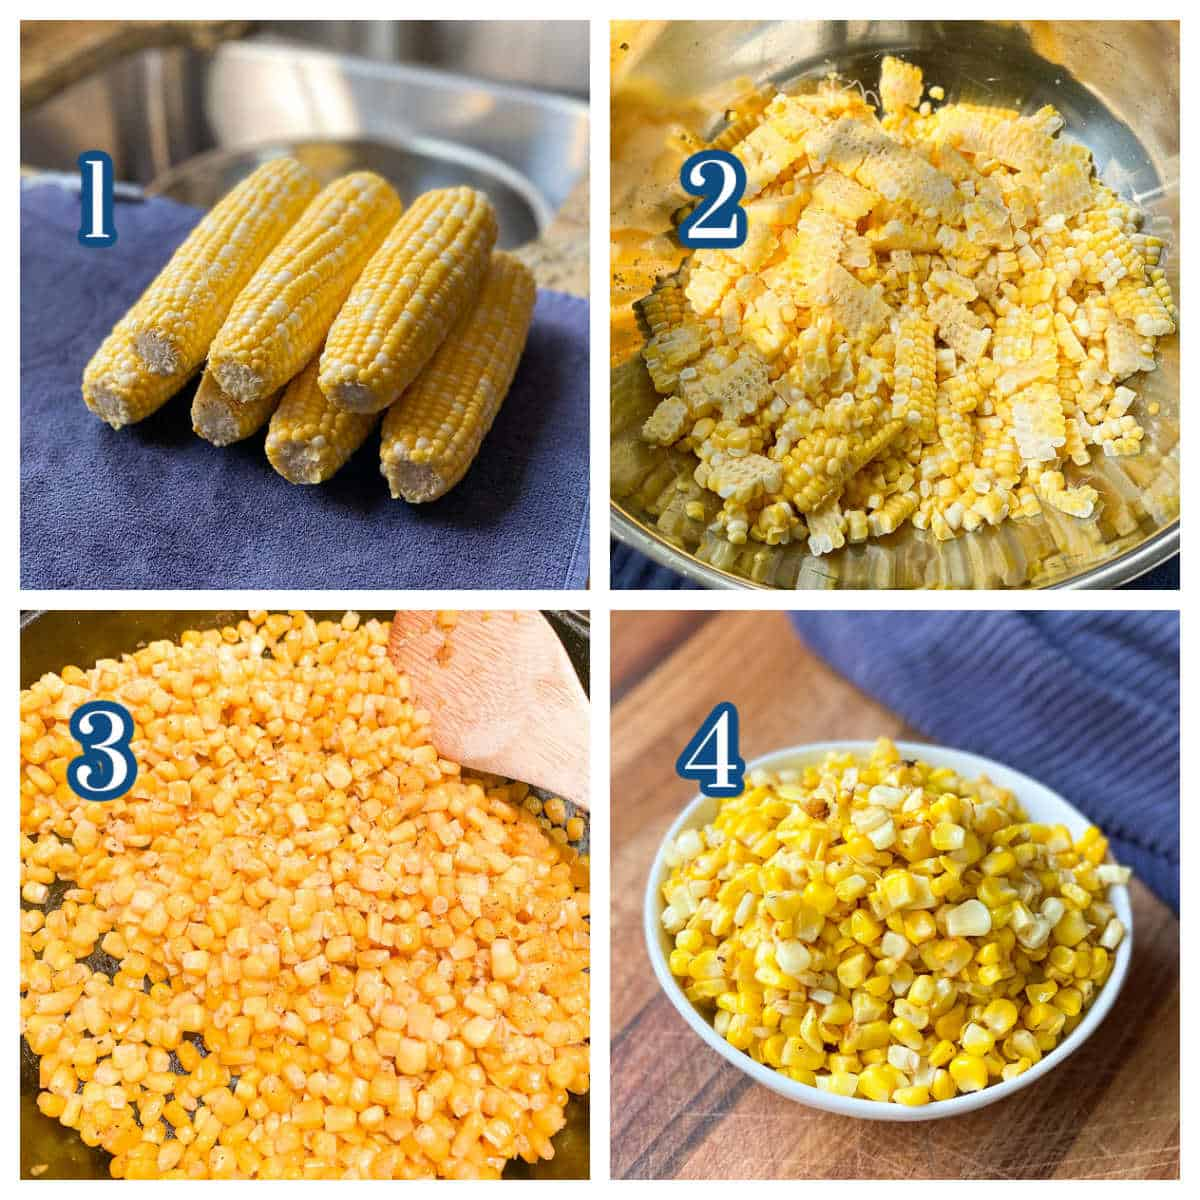 Collage showing 4 steps for making Fried Corn Recipe.